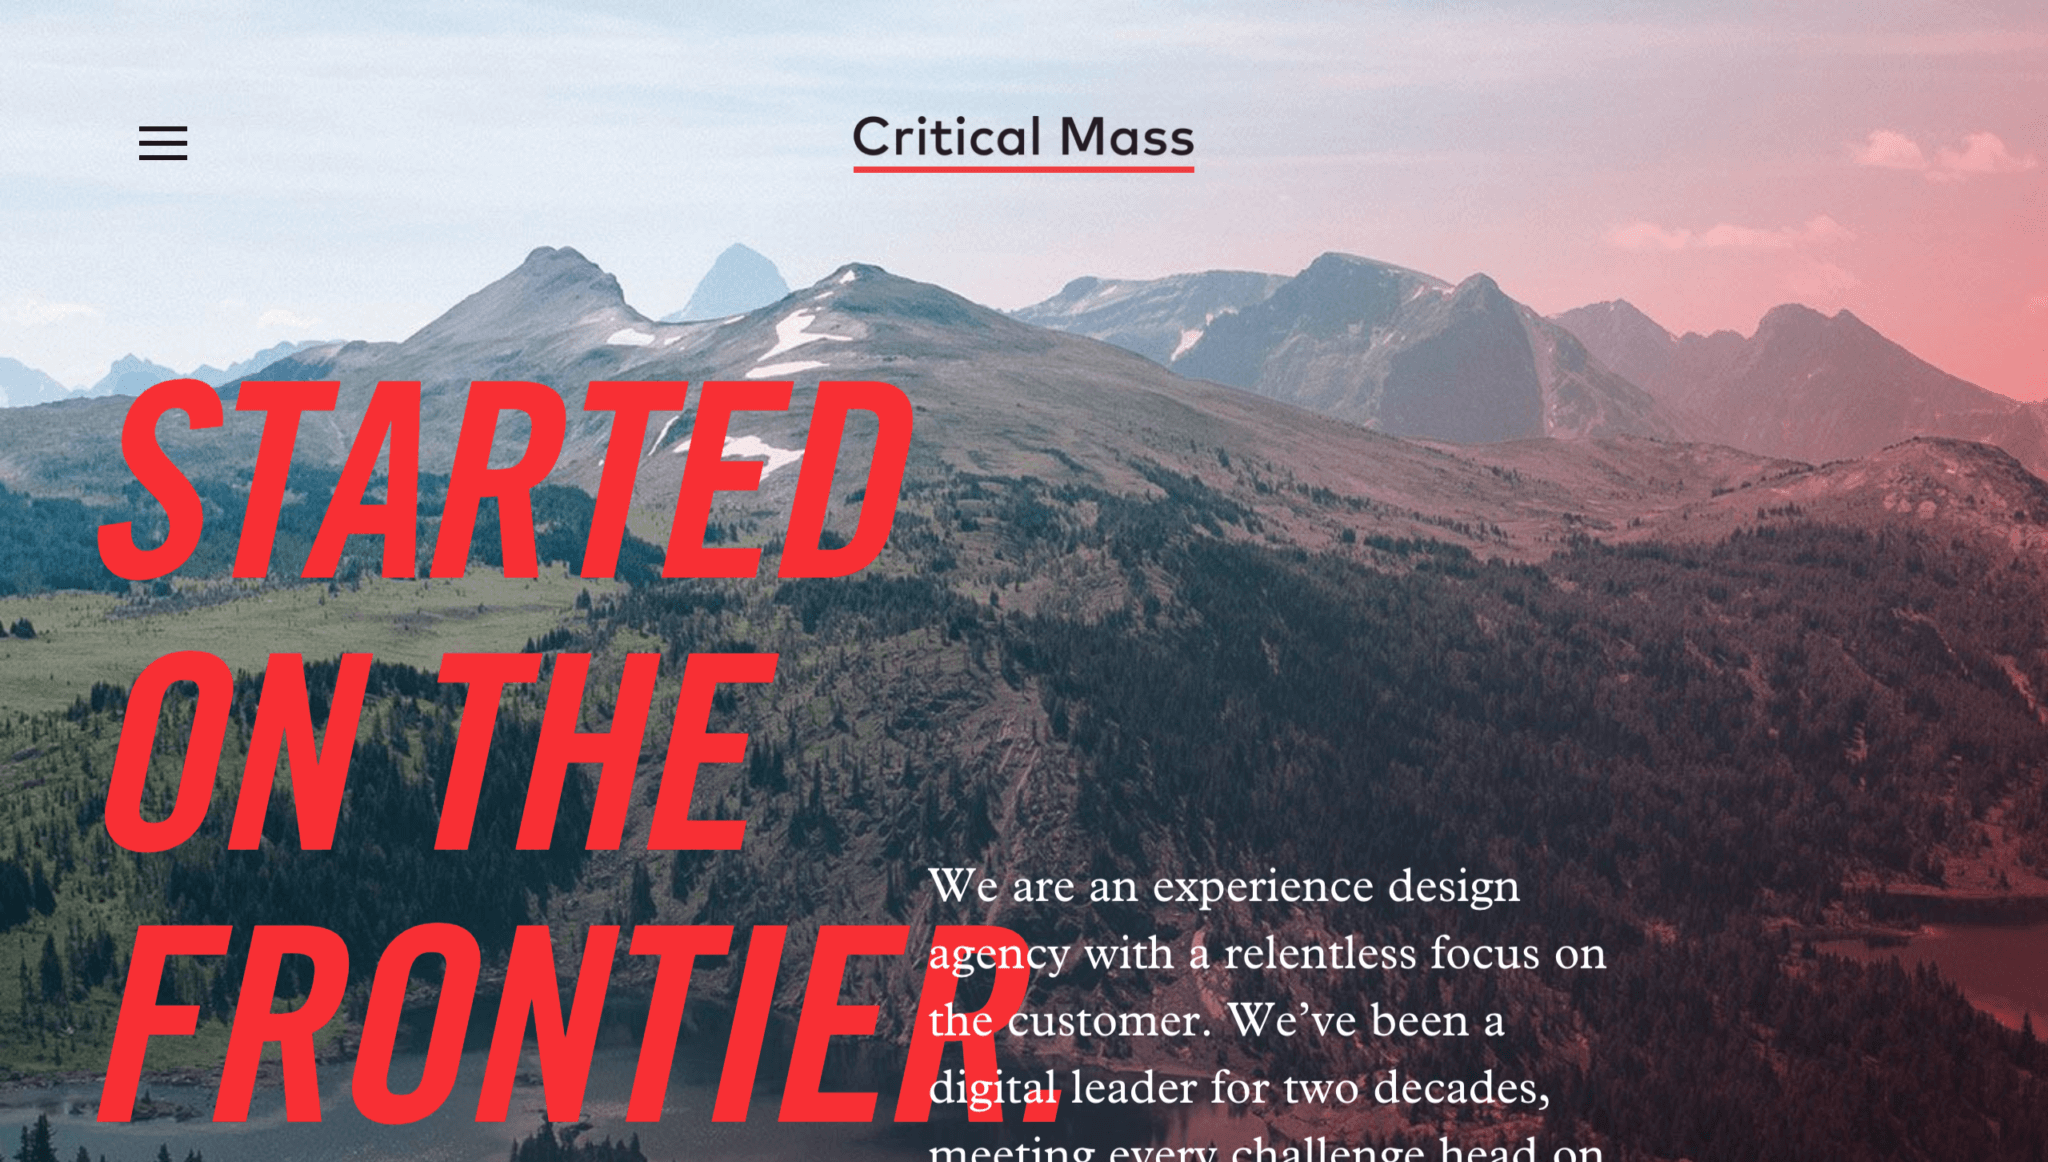 The Critical Mass page, with the text subtly positioned to encourage visitors to scroll down.